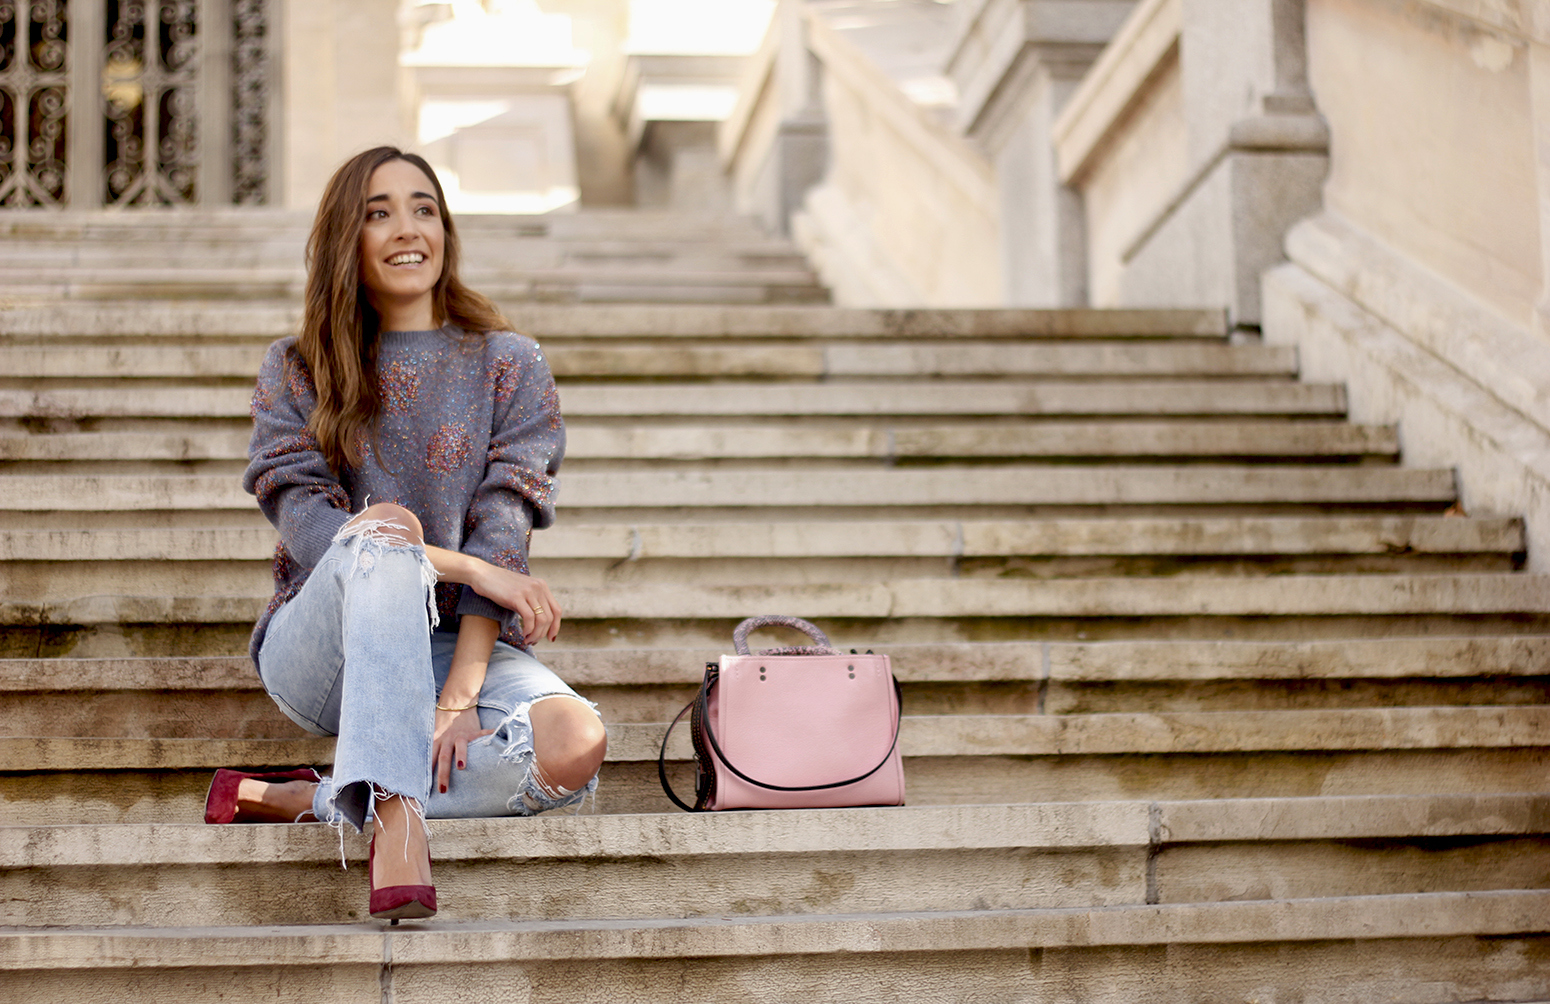 GRAY CHRISTMAS JERSEY ripped jeans pink coaach bag burgundy heels street style fall outfit 20187029